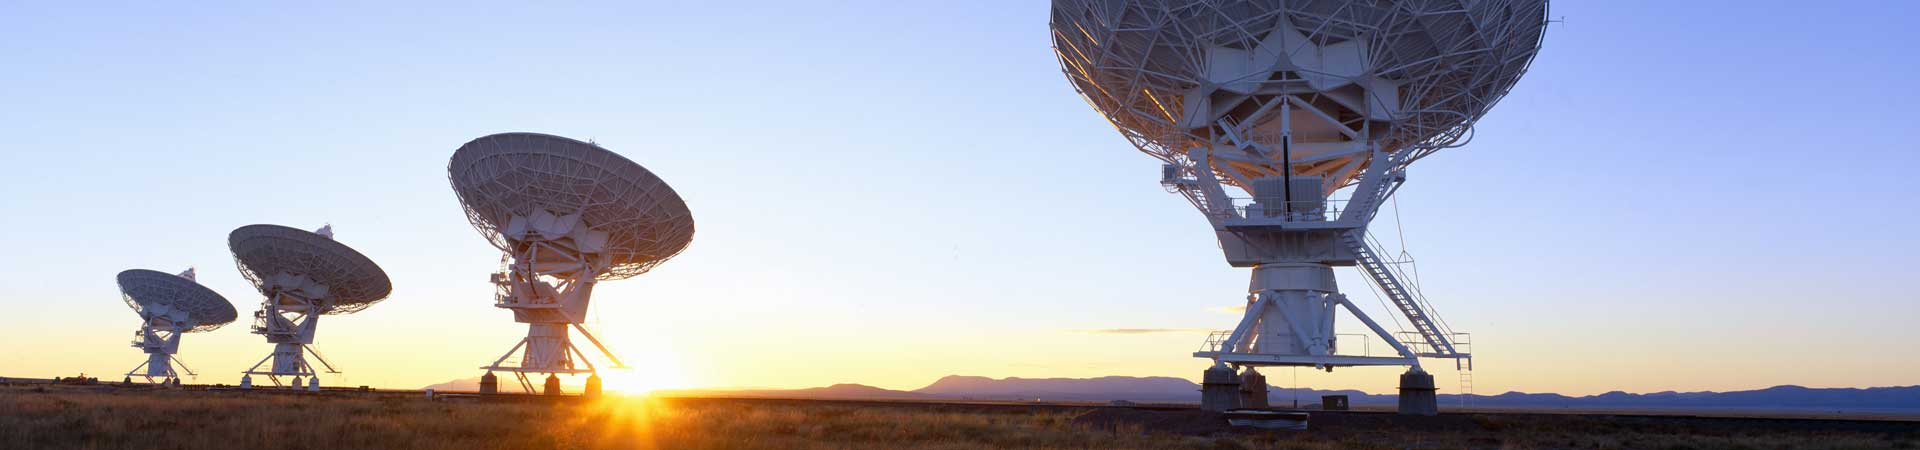 Broadcasting and telecommunications